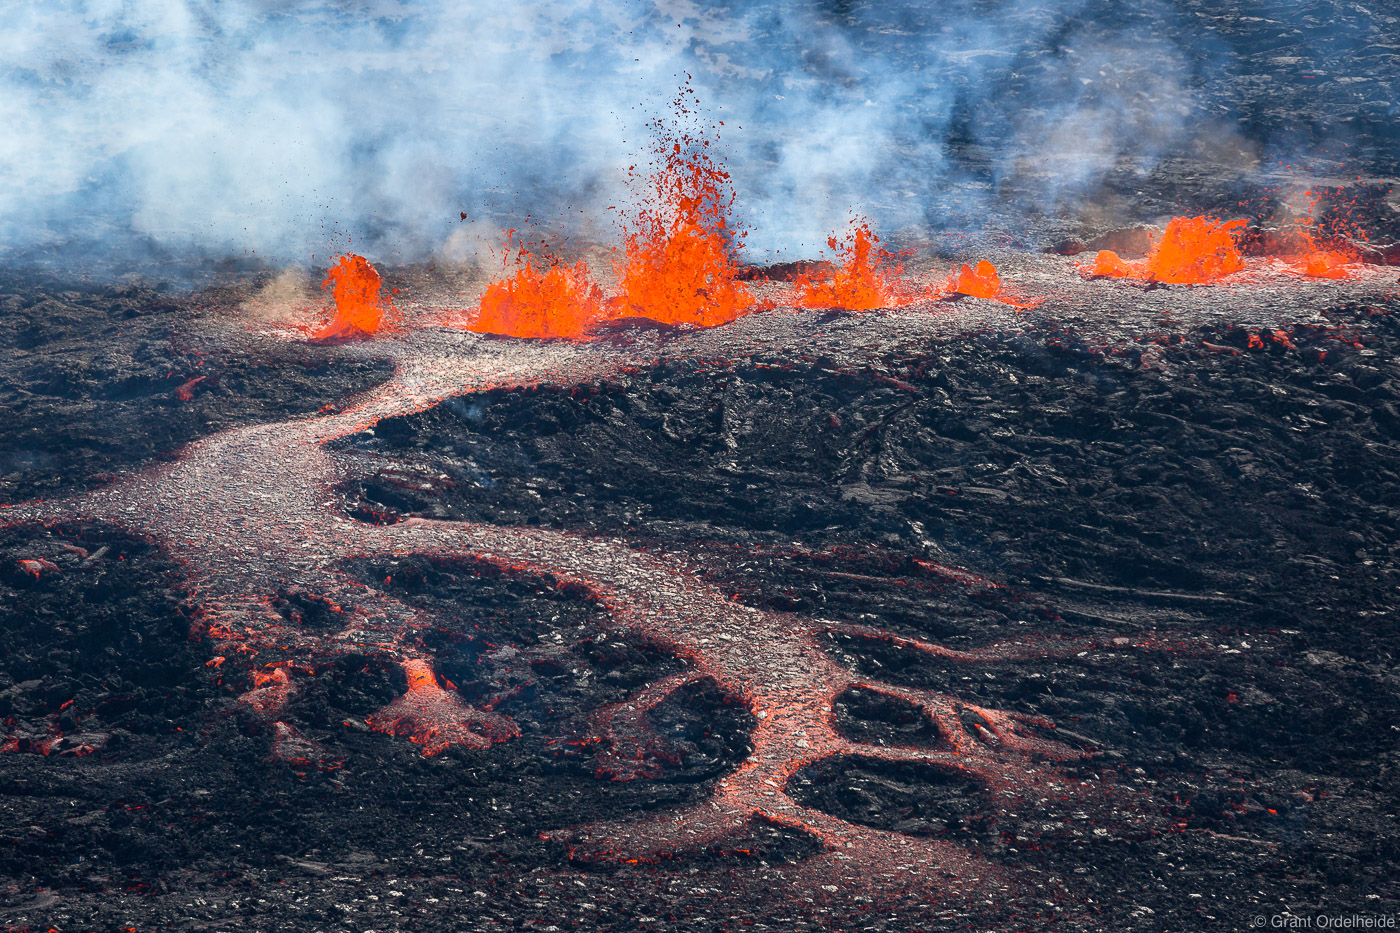 A lava eruption from a fissure near the Bardarbunga volcano in Iceland's Holuhraun lava field.